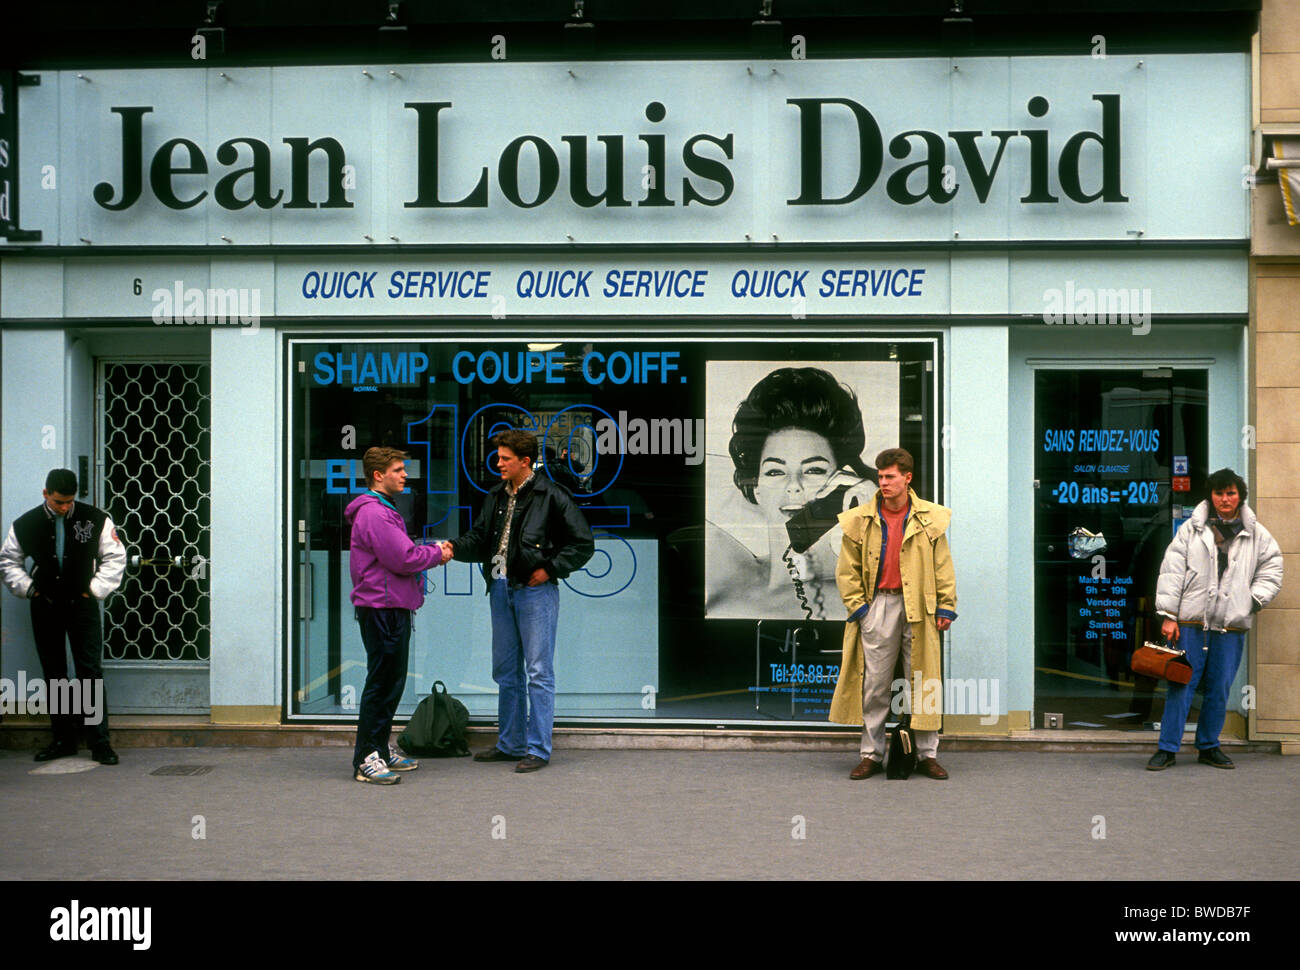 French People Greeting Jean Louis David Hair Salon Hairdresser Stock Photo Alamy